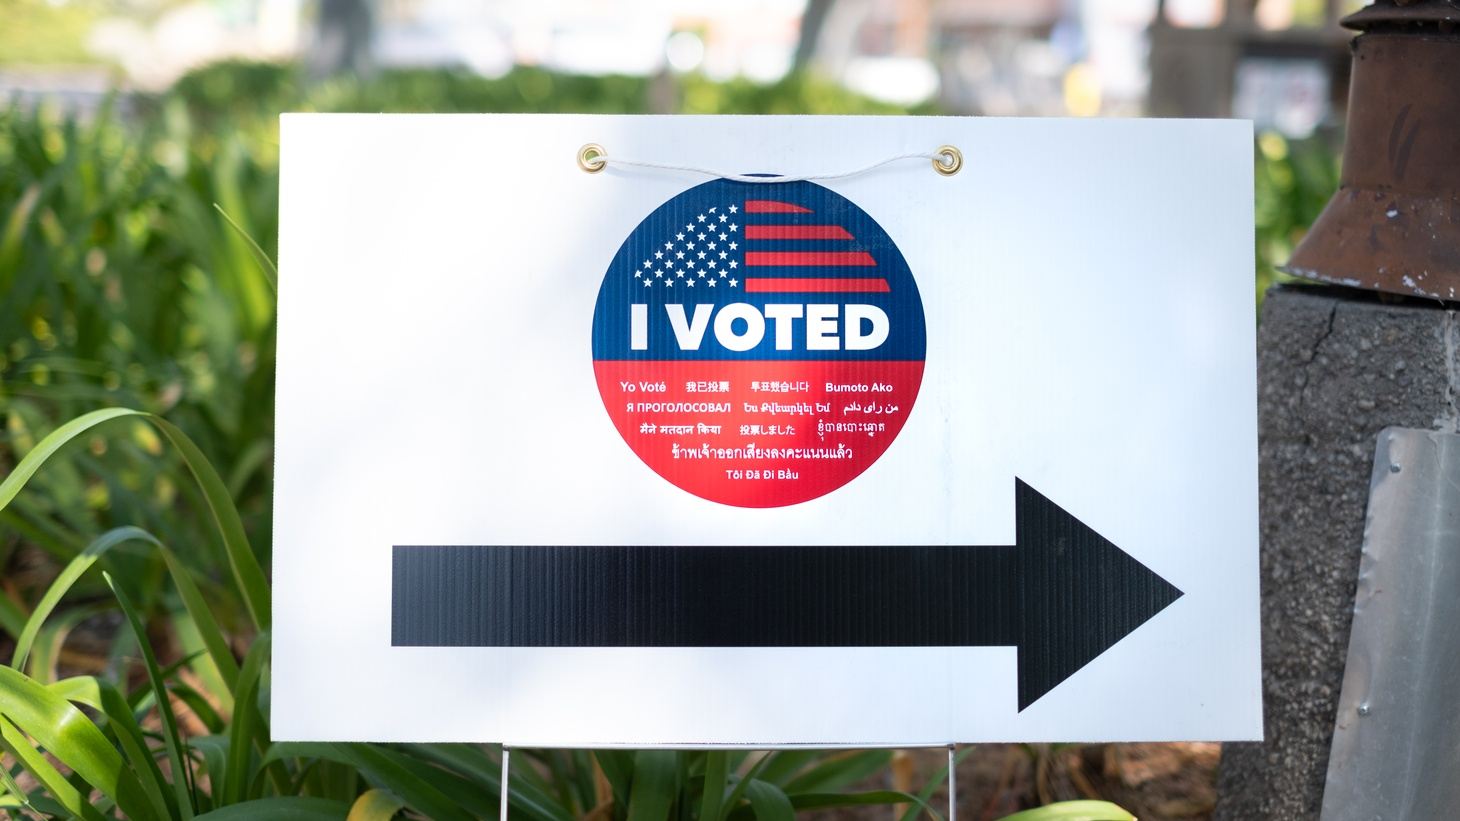 A voting sign at the Veterans Memorial Complex in Culver City.